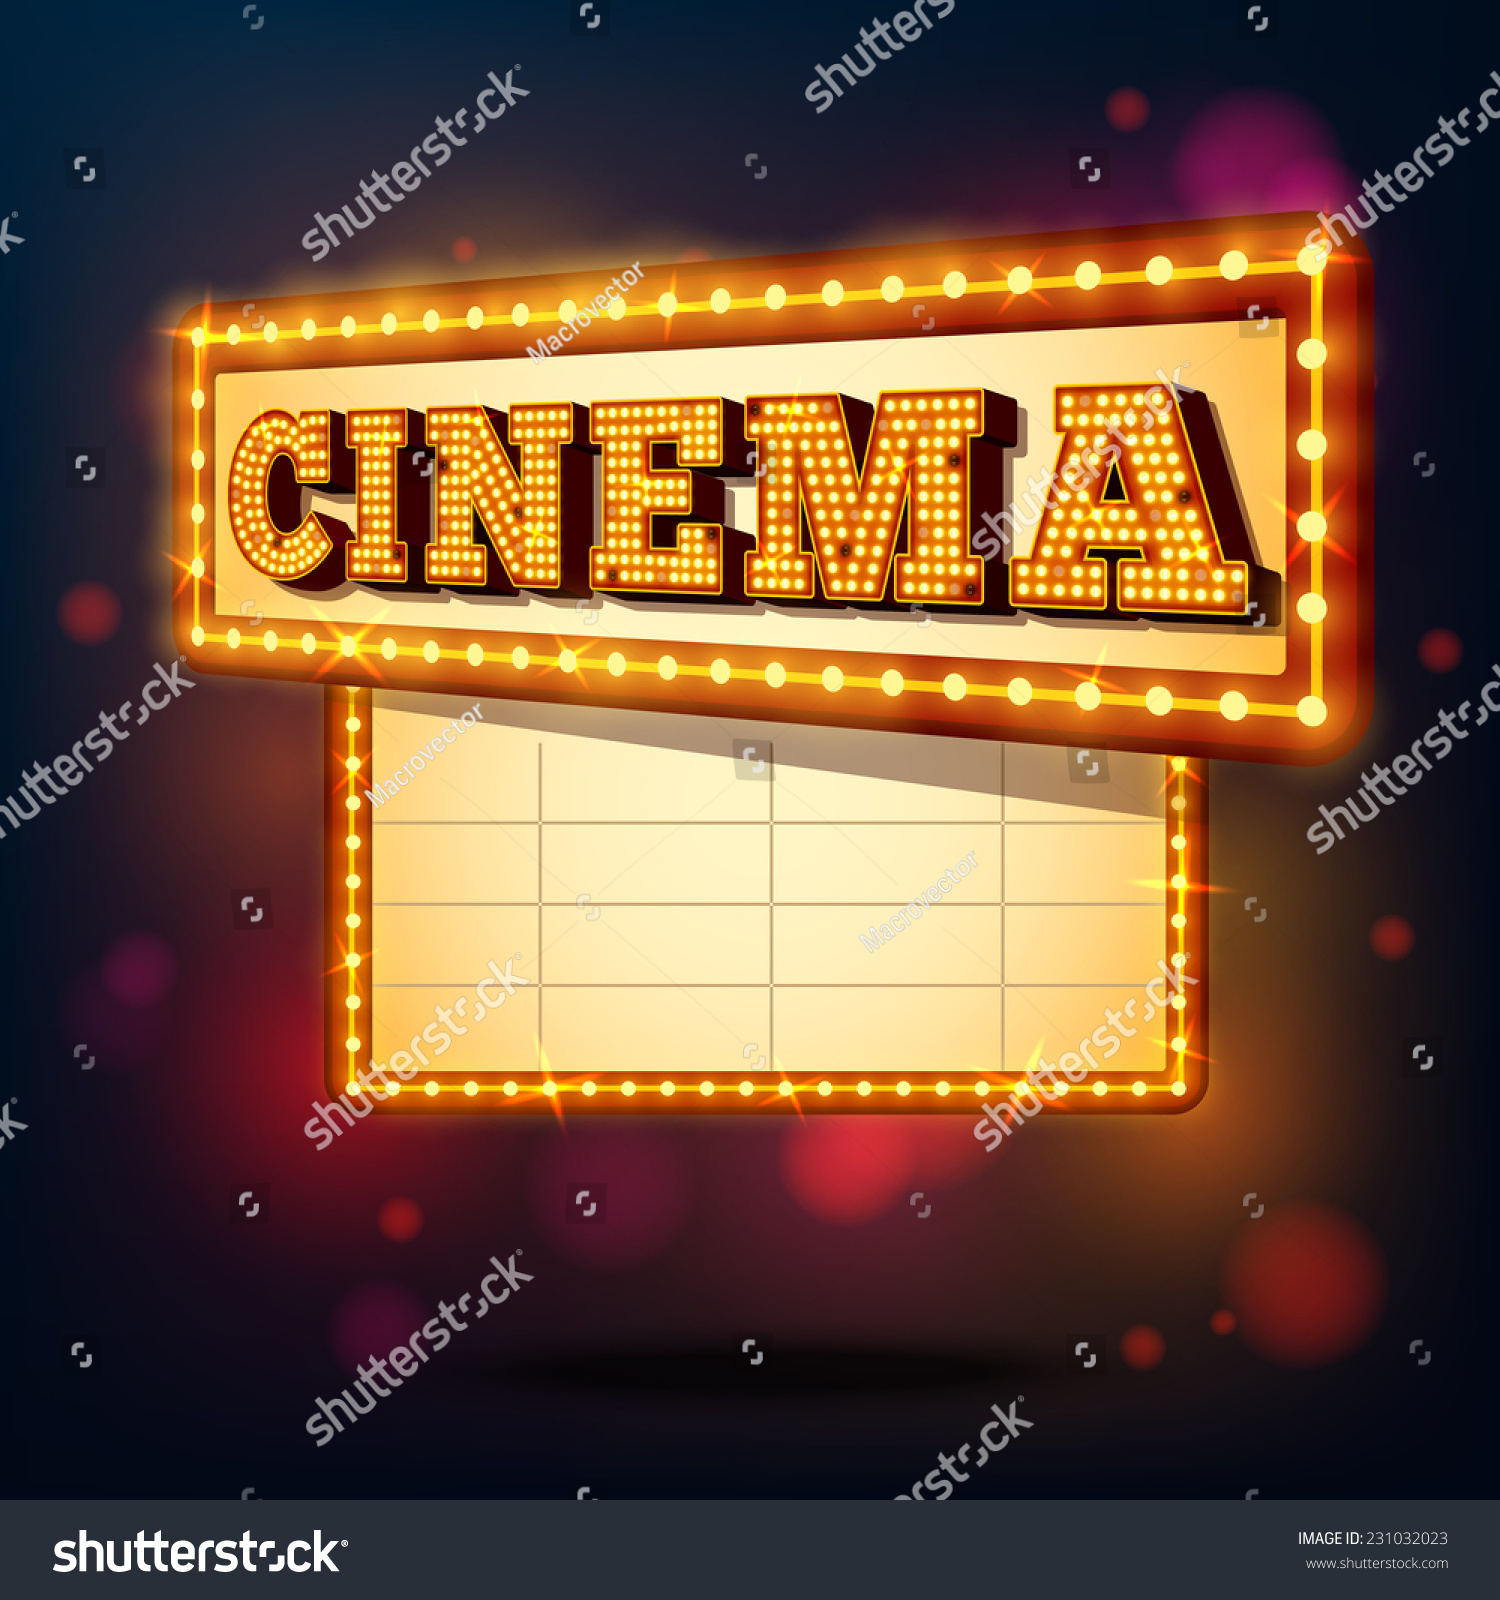 Retro Cinema Marquee Neon Lights Advertising Sign Background Vector Illustration - 231032023 ...